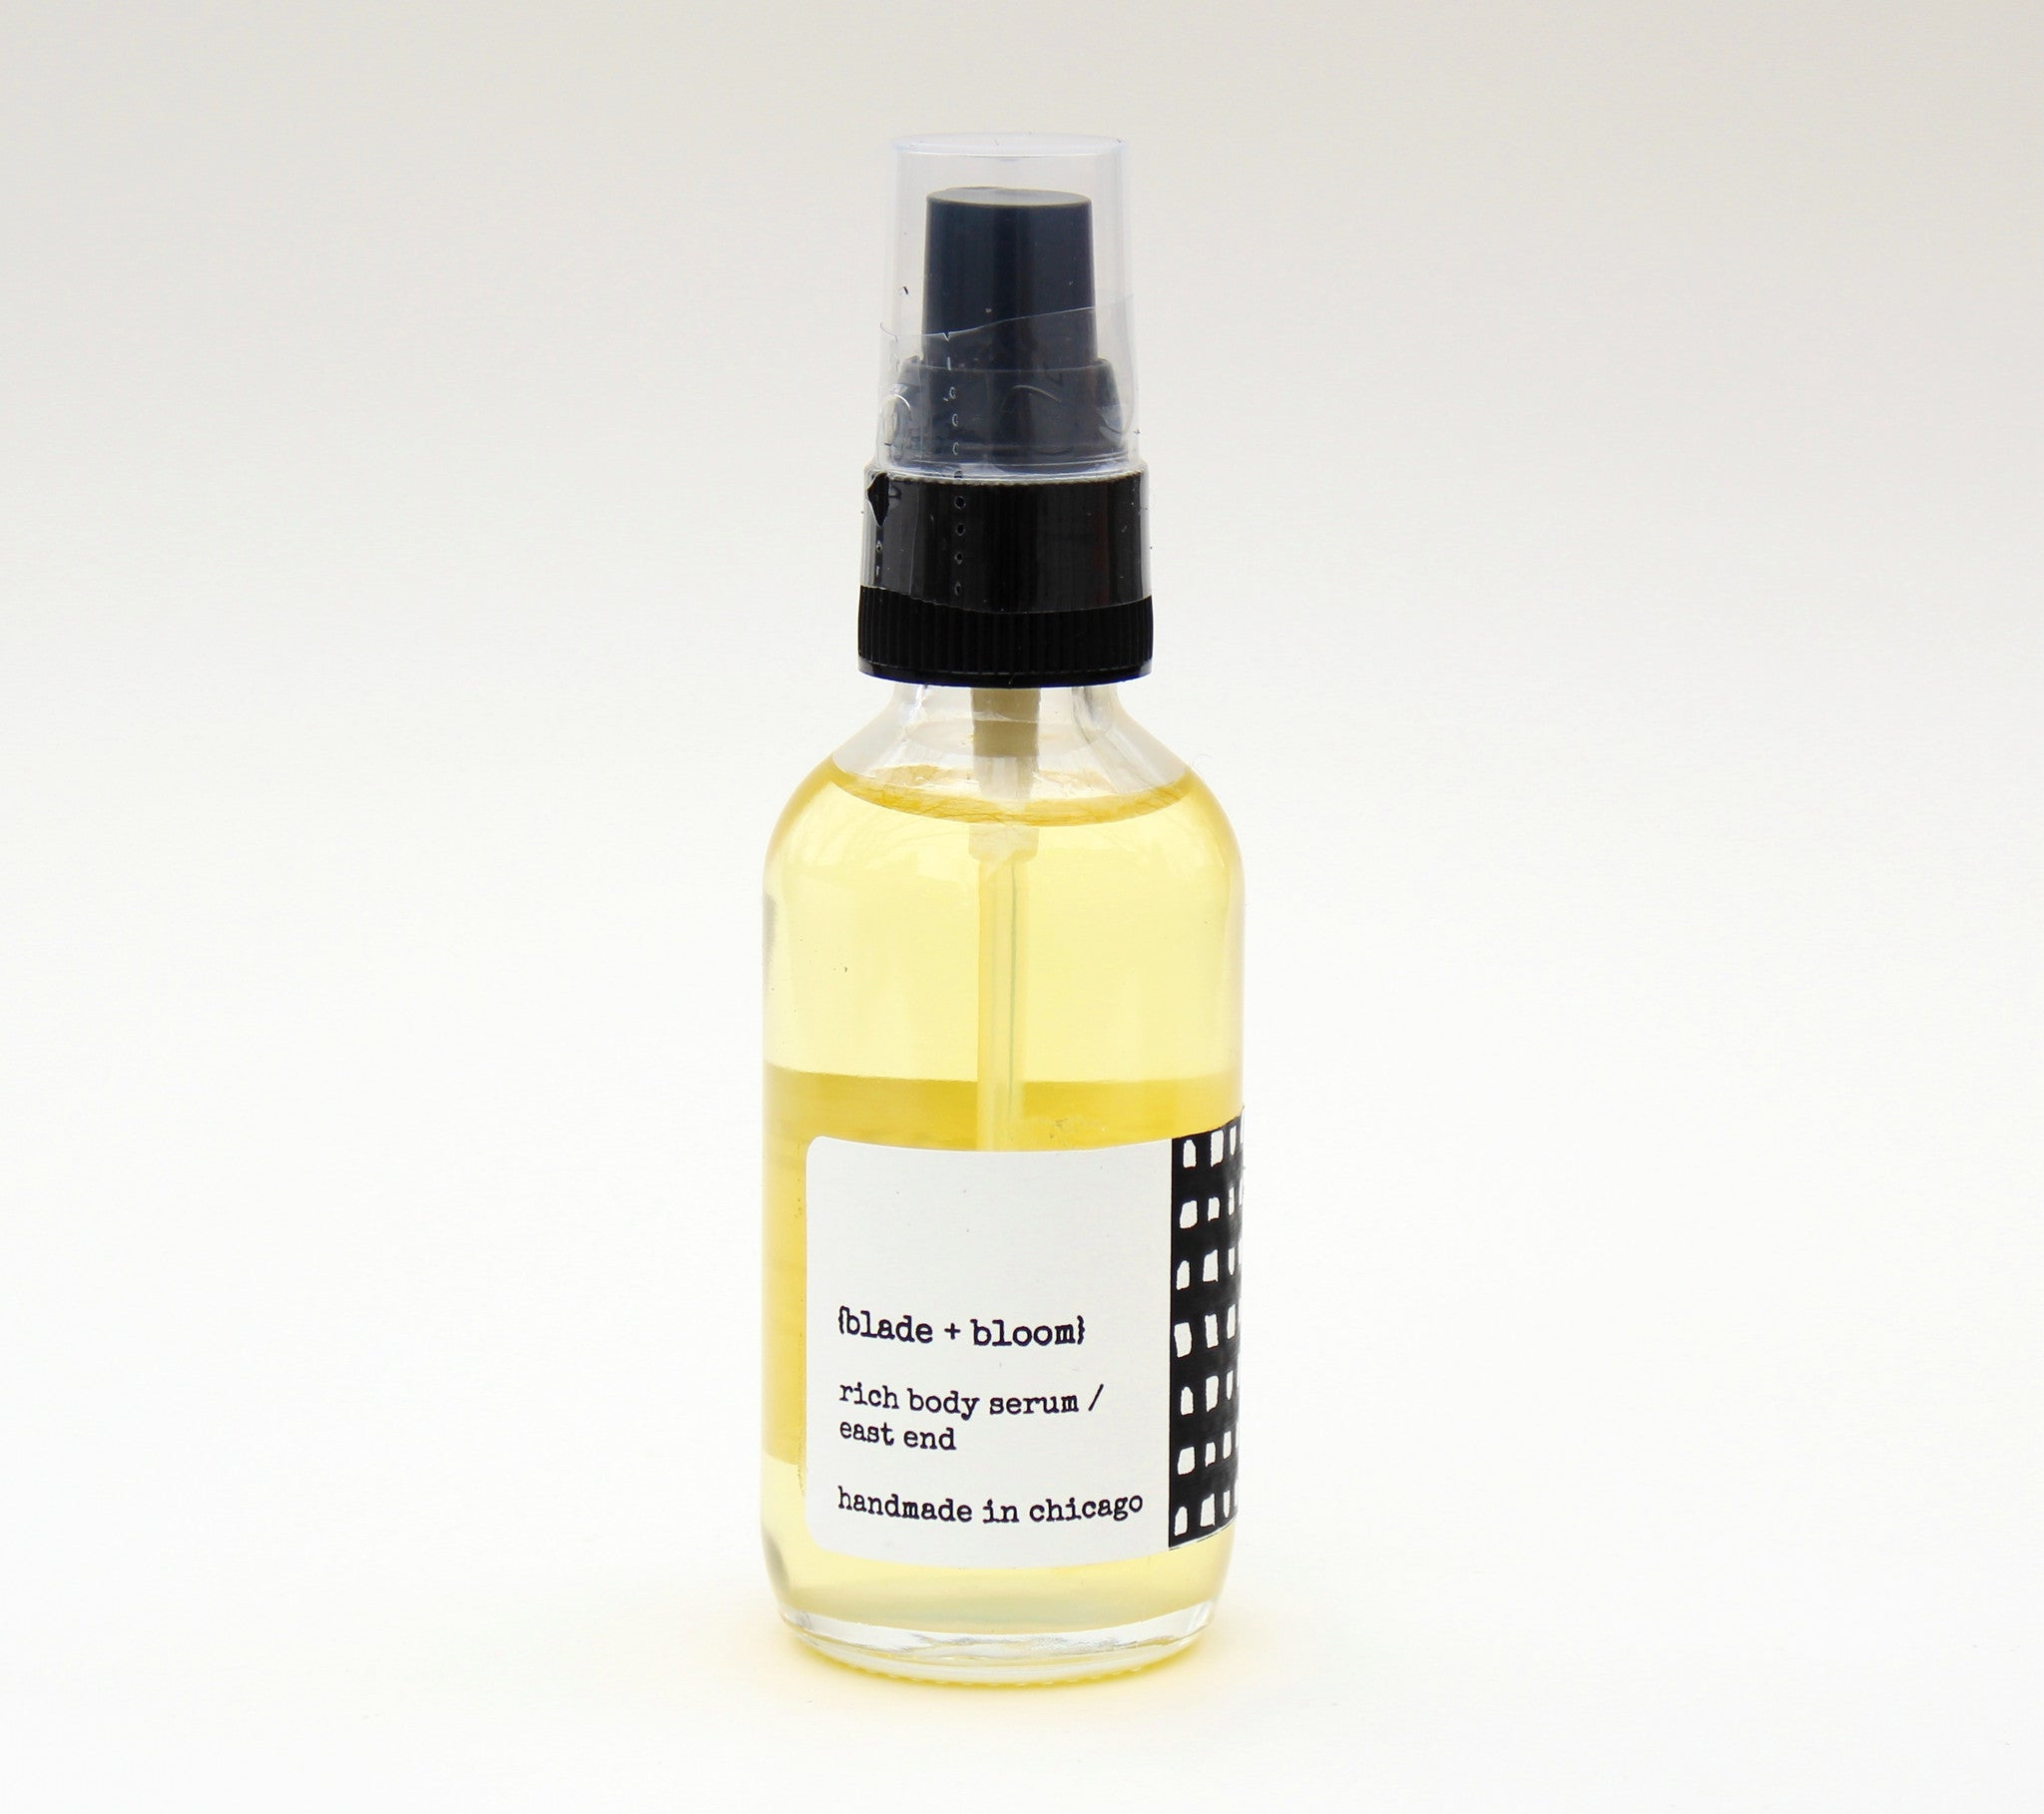 rich body serum / east end